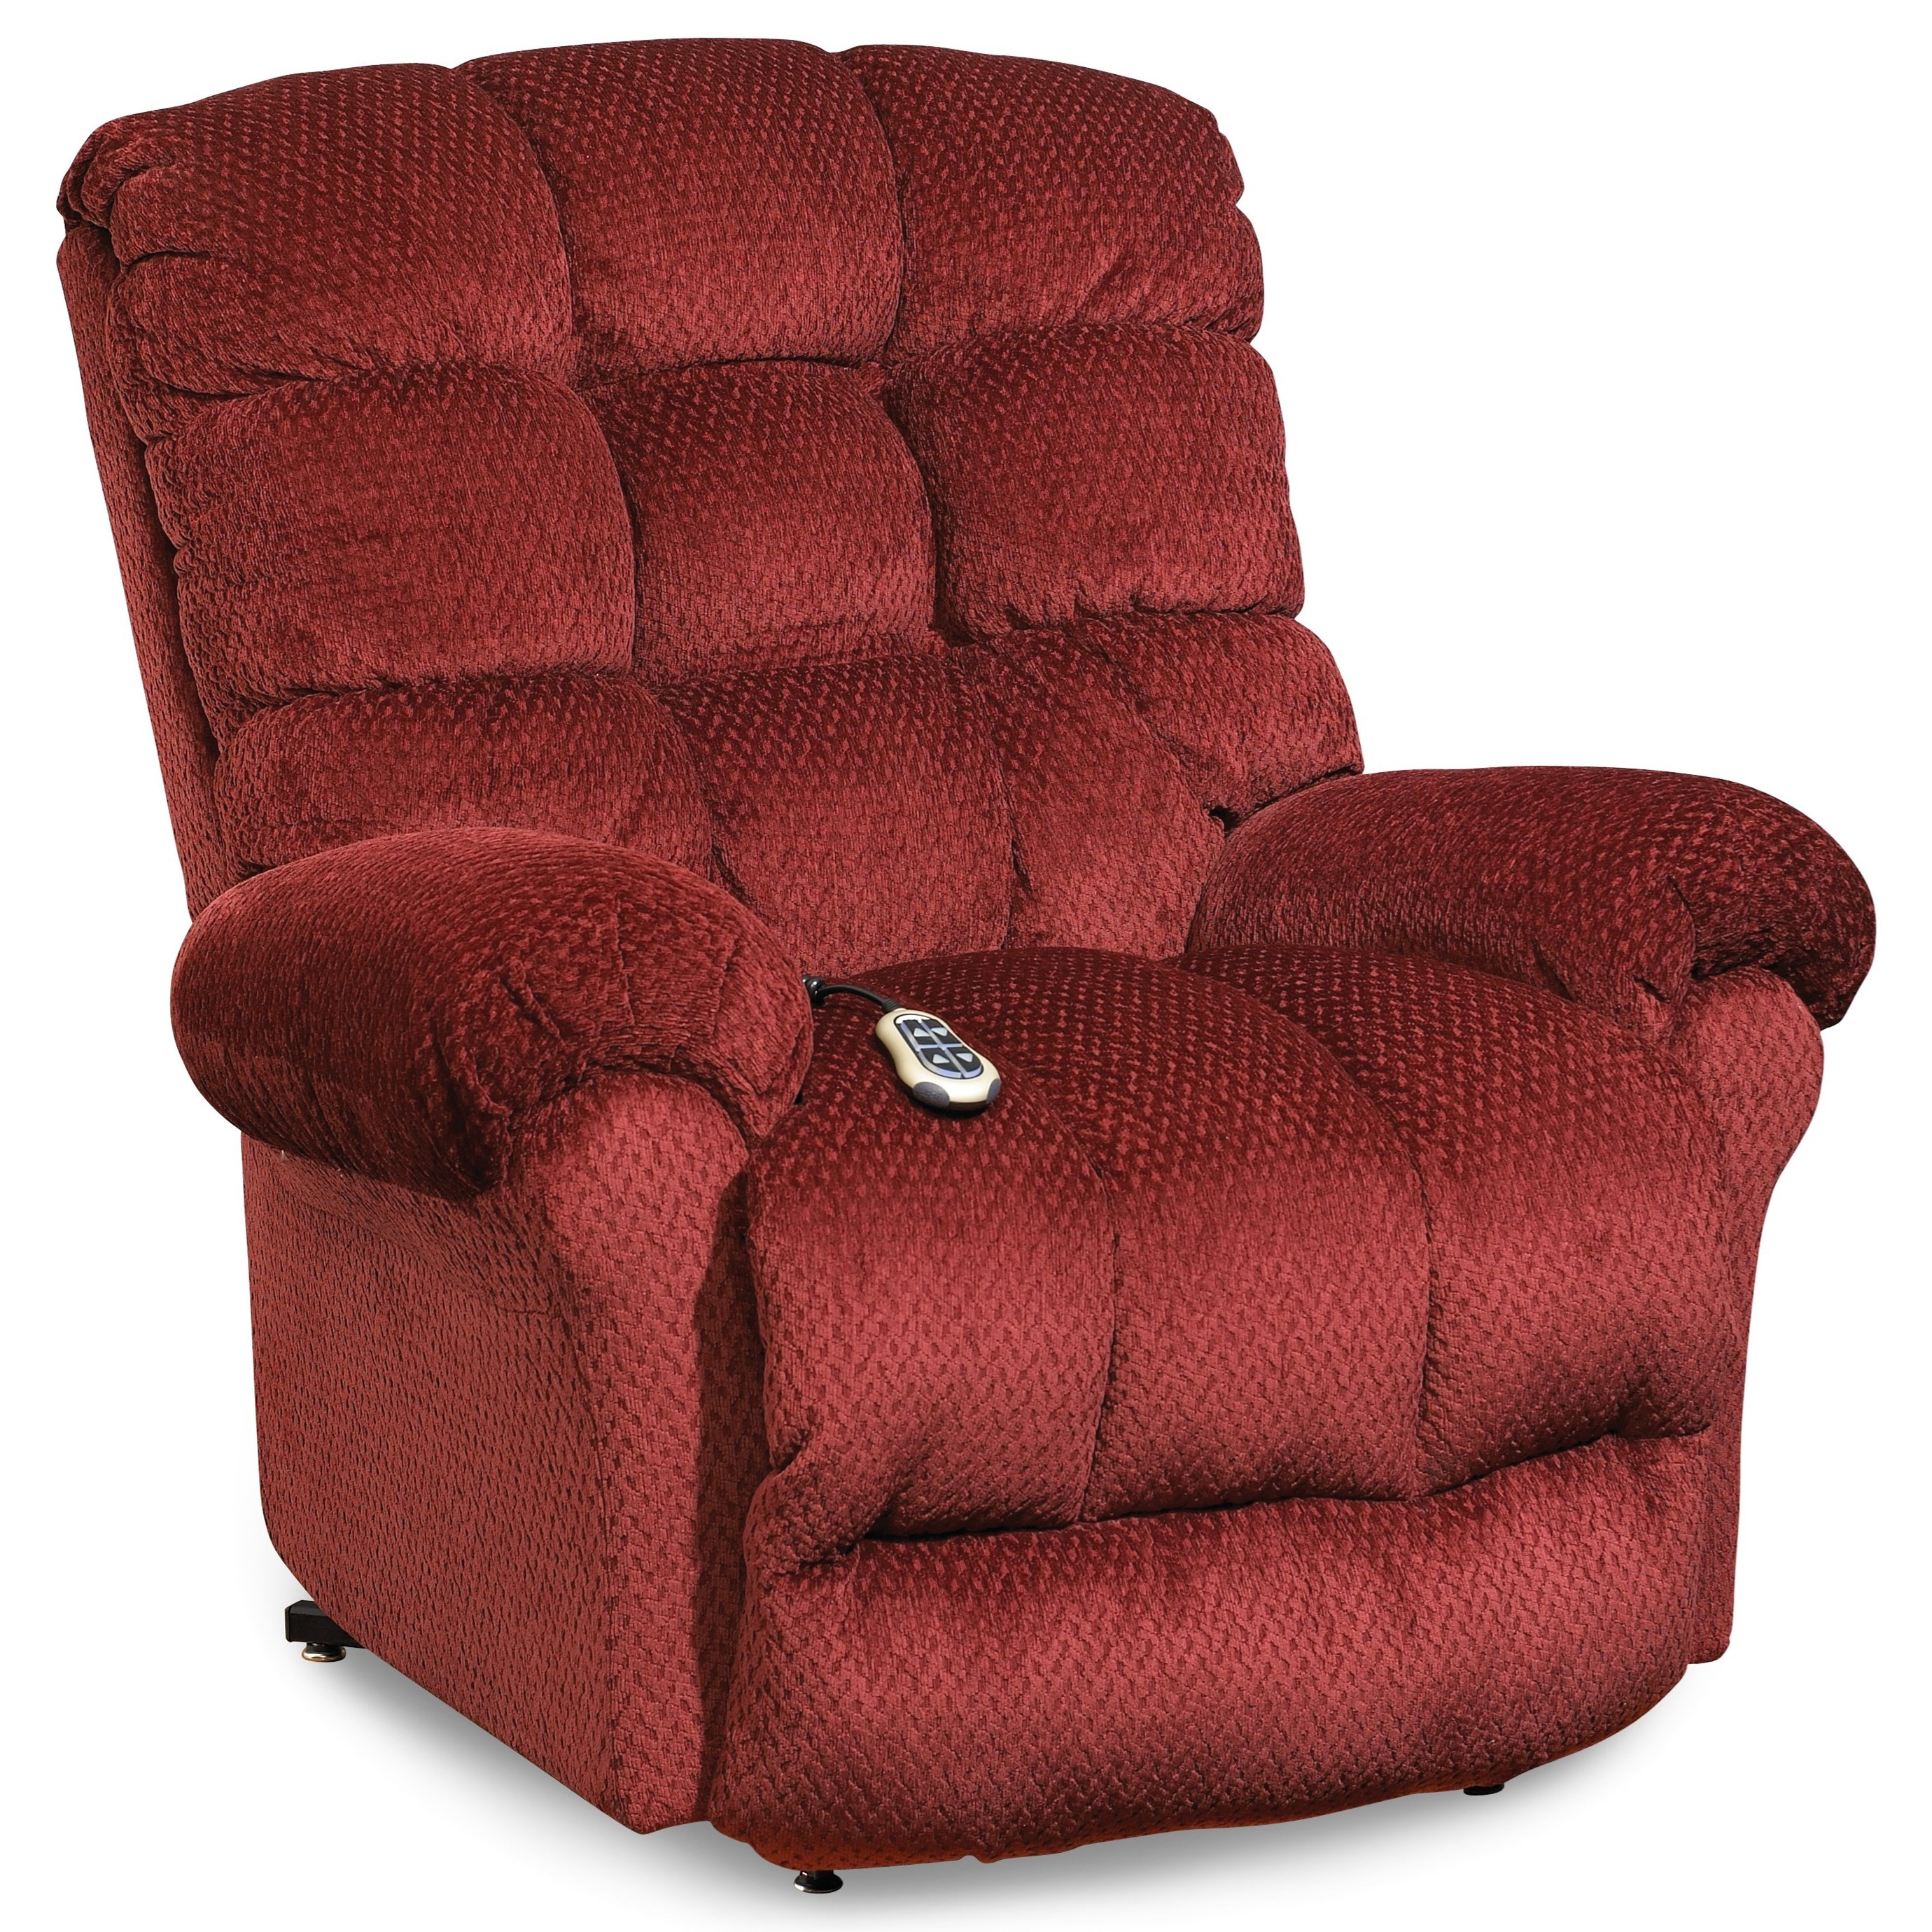 Recliners - BodyRest Denton BodyRest Lift Recliner by Best Home Furnishings at Baer's Furniture